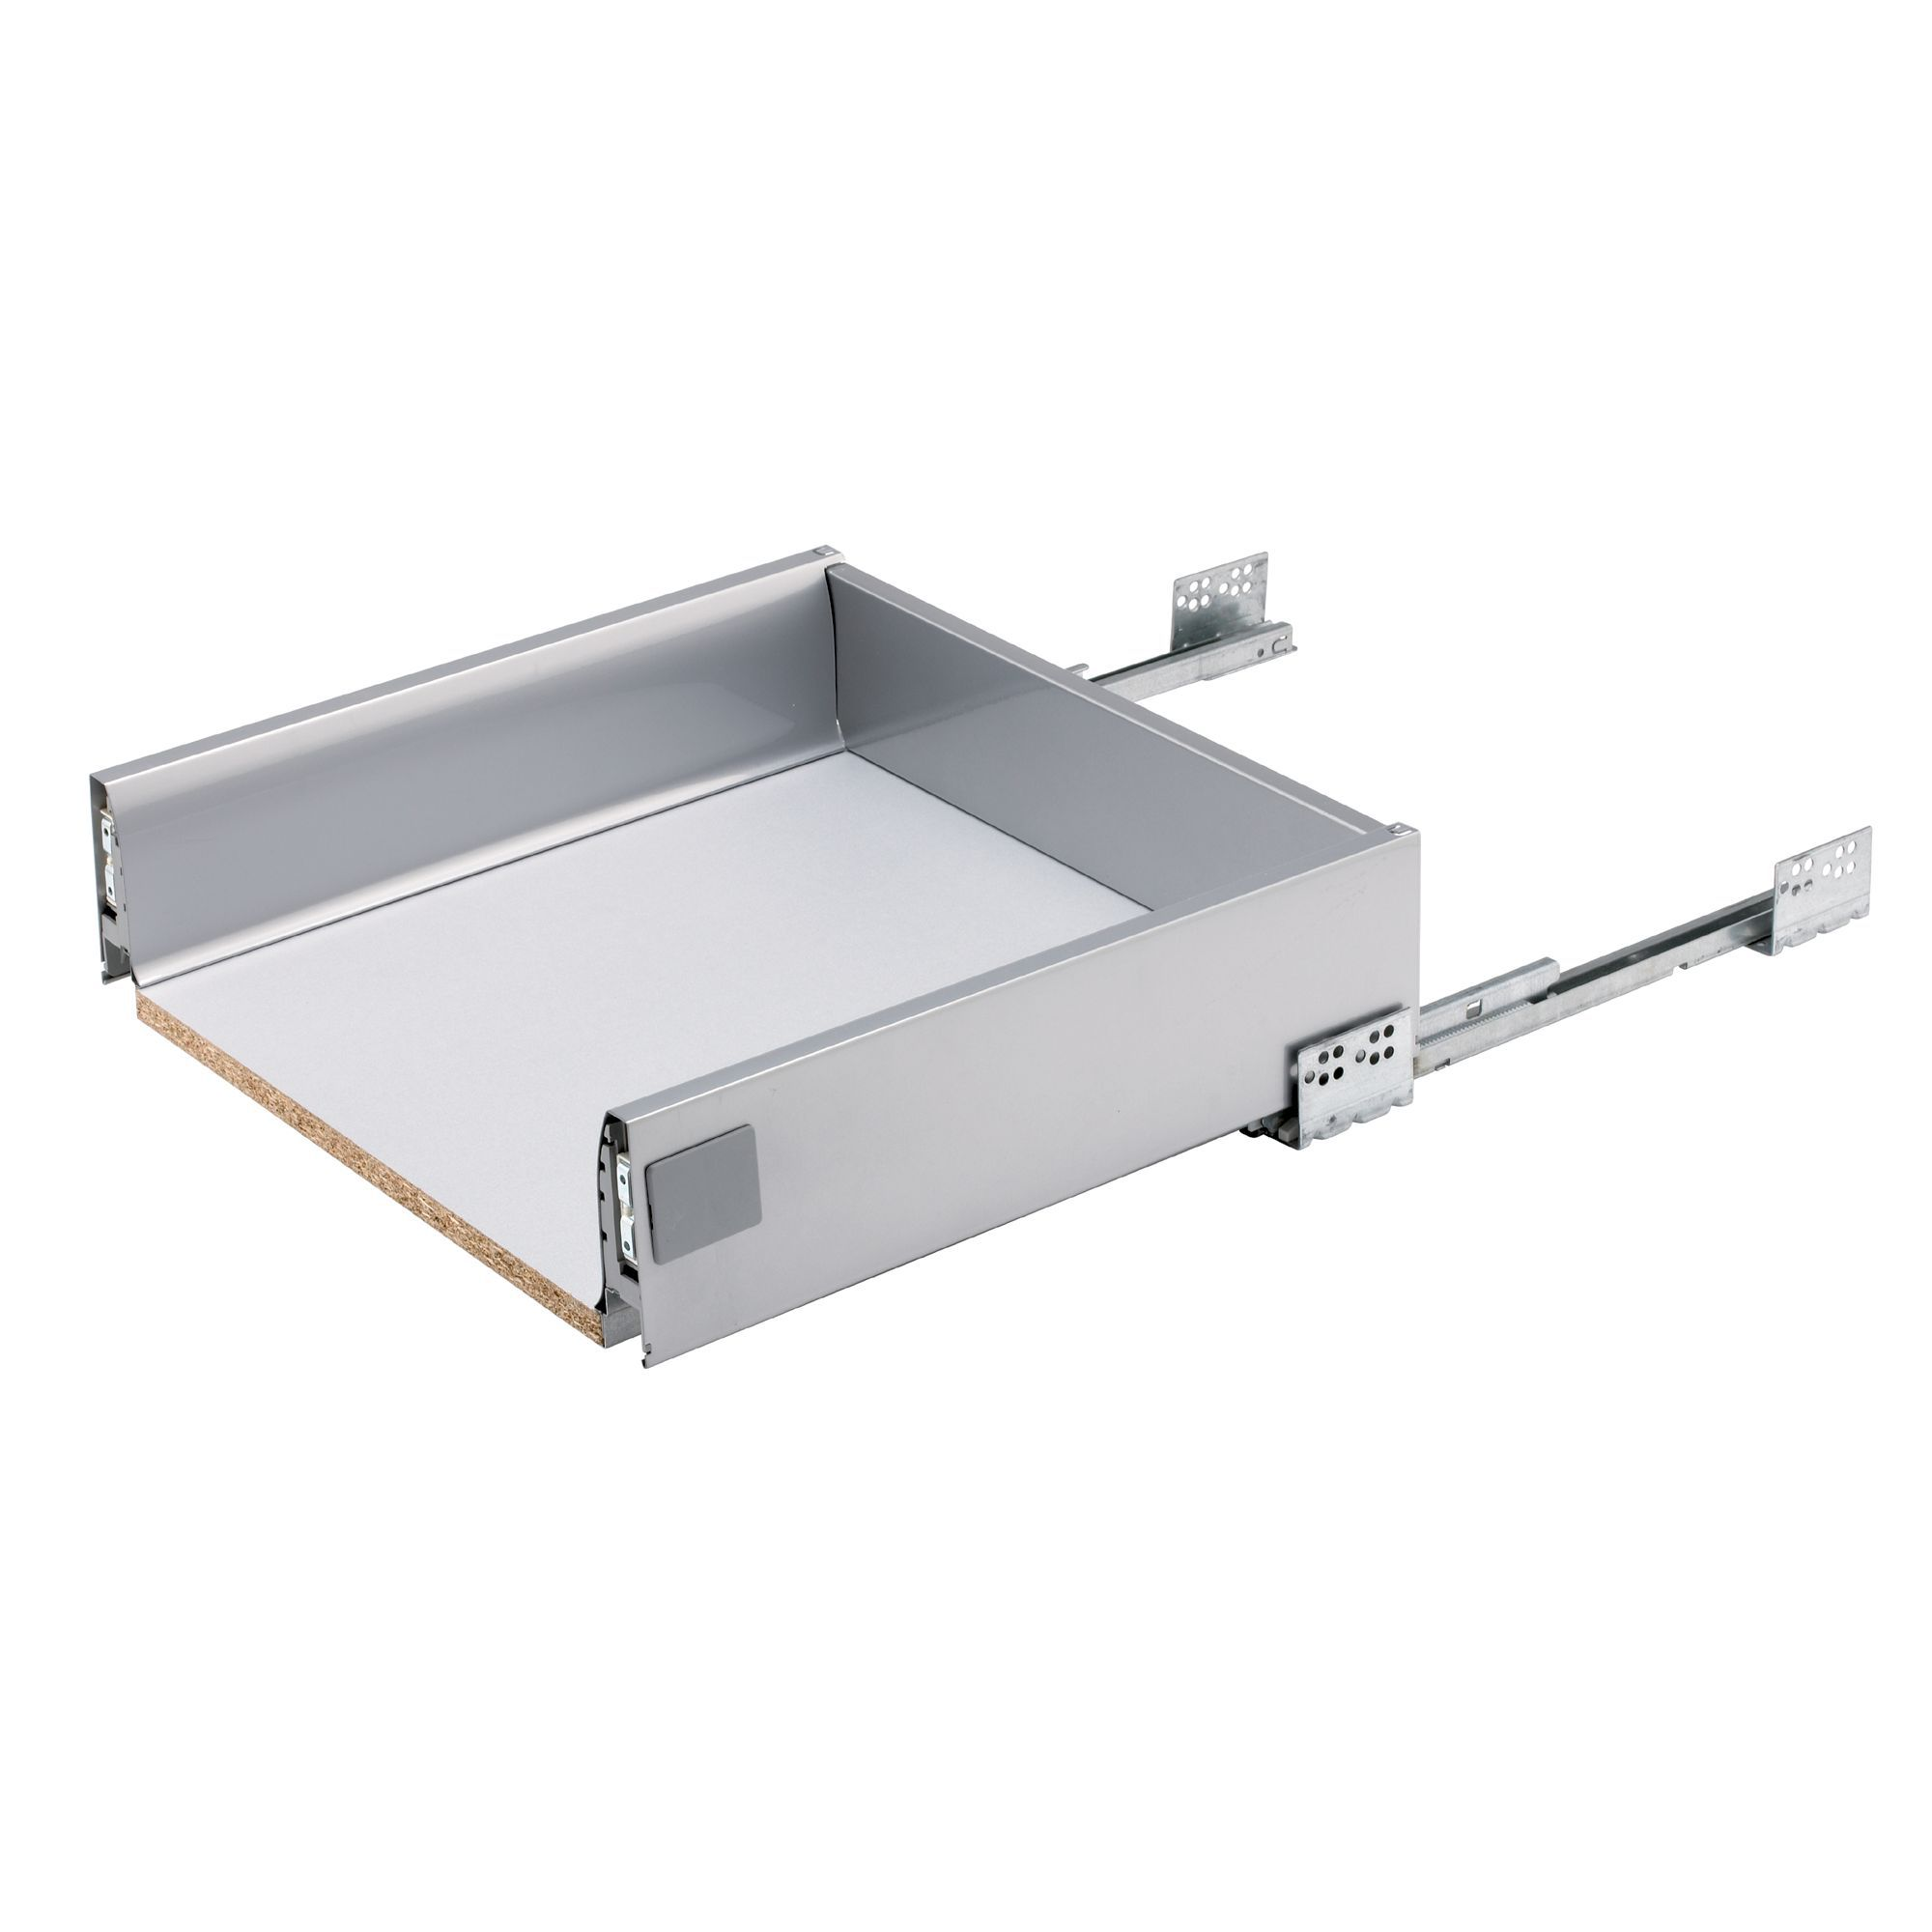 IT Kitchens Stainless Steel Effect Drawer Box W 468mm